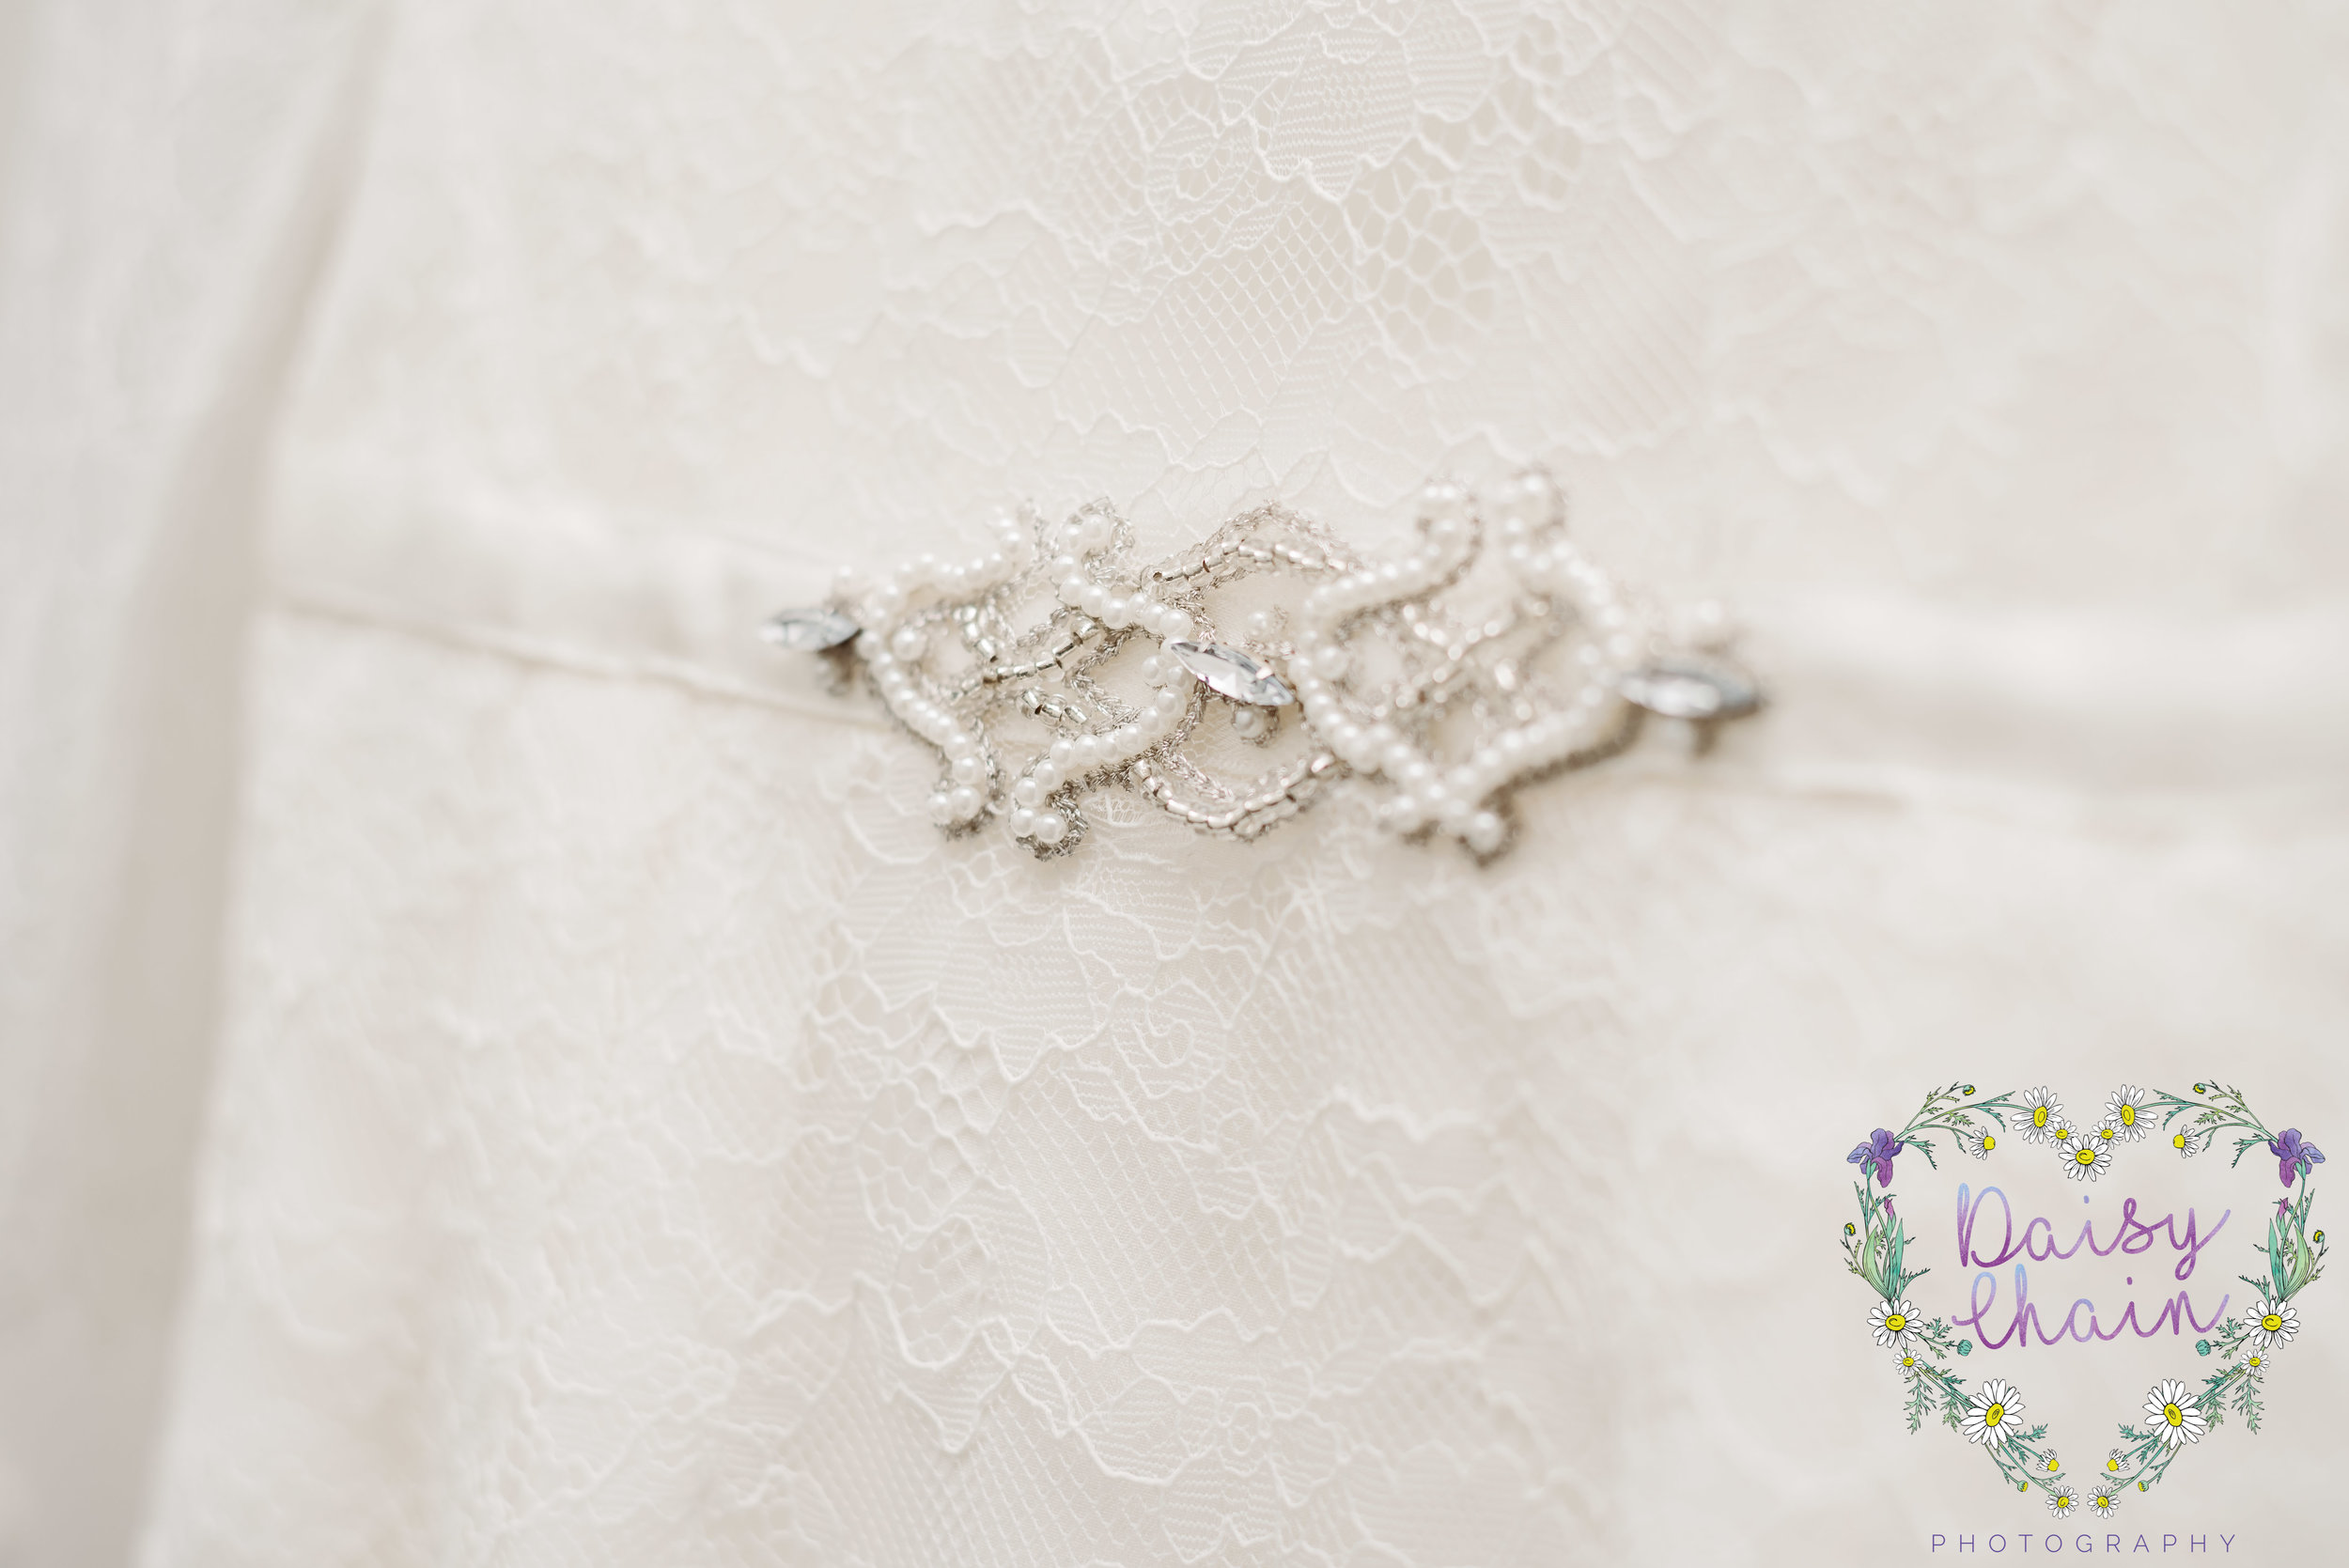 Monsoon wedding dress - detail